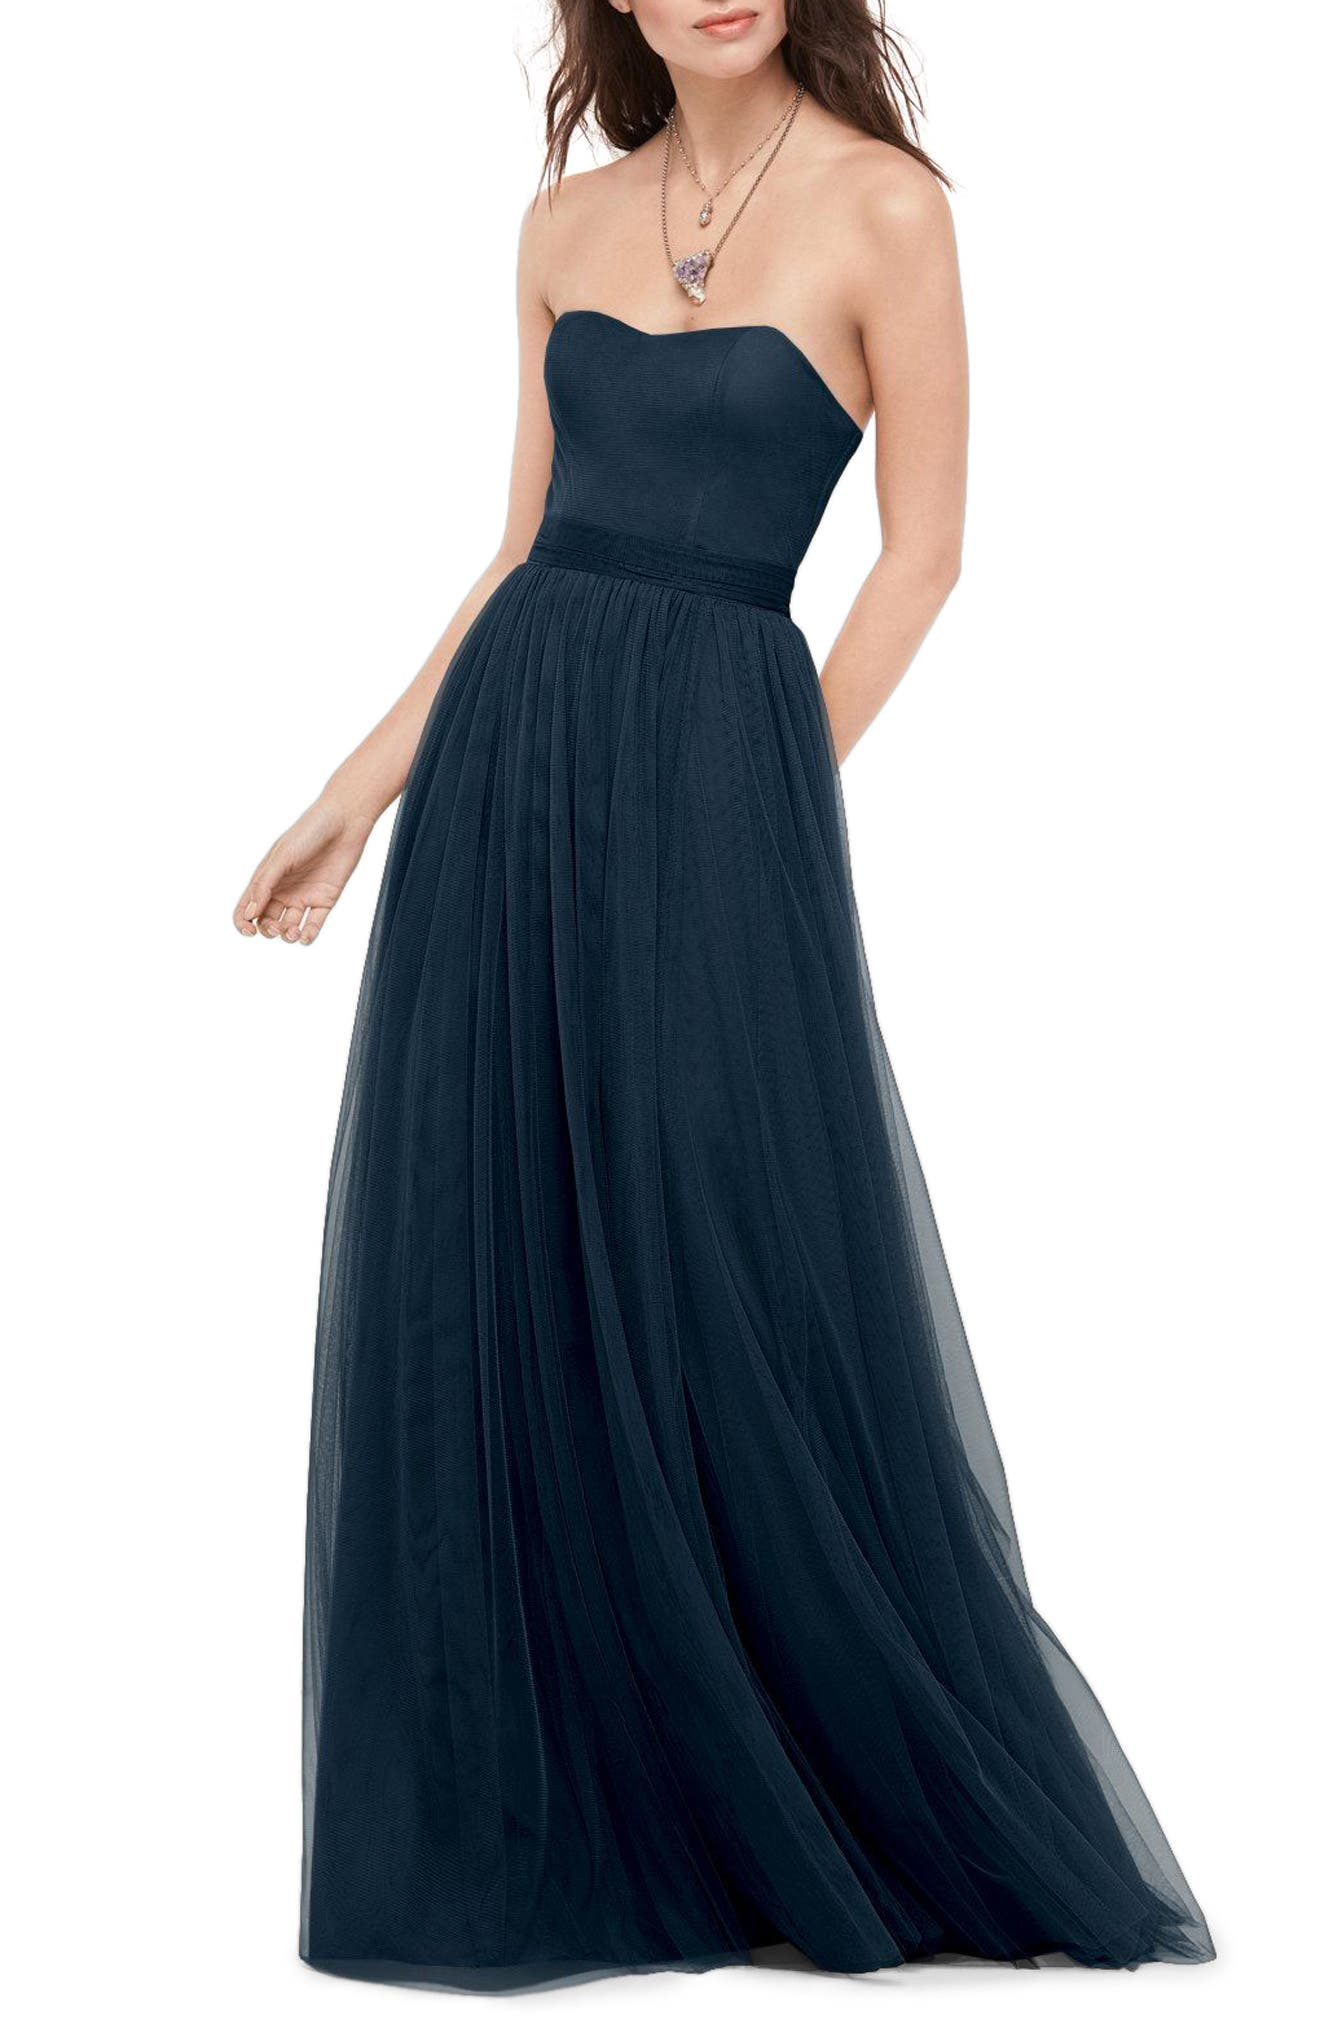 Bobbinet Strapless Gown,                             Main thumbnail 2, color,